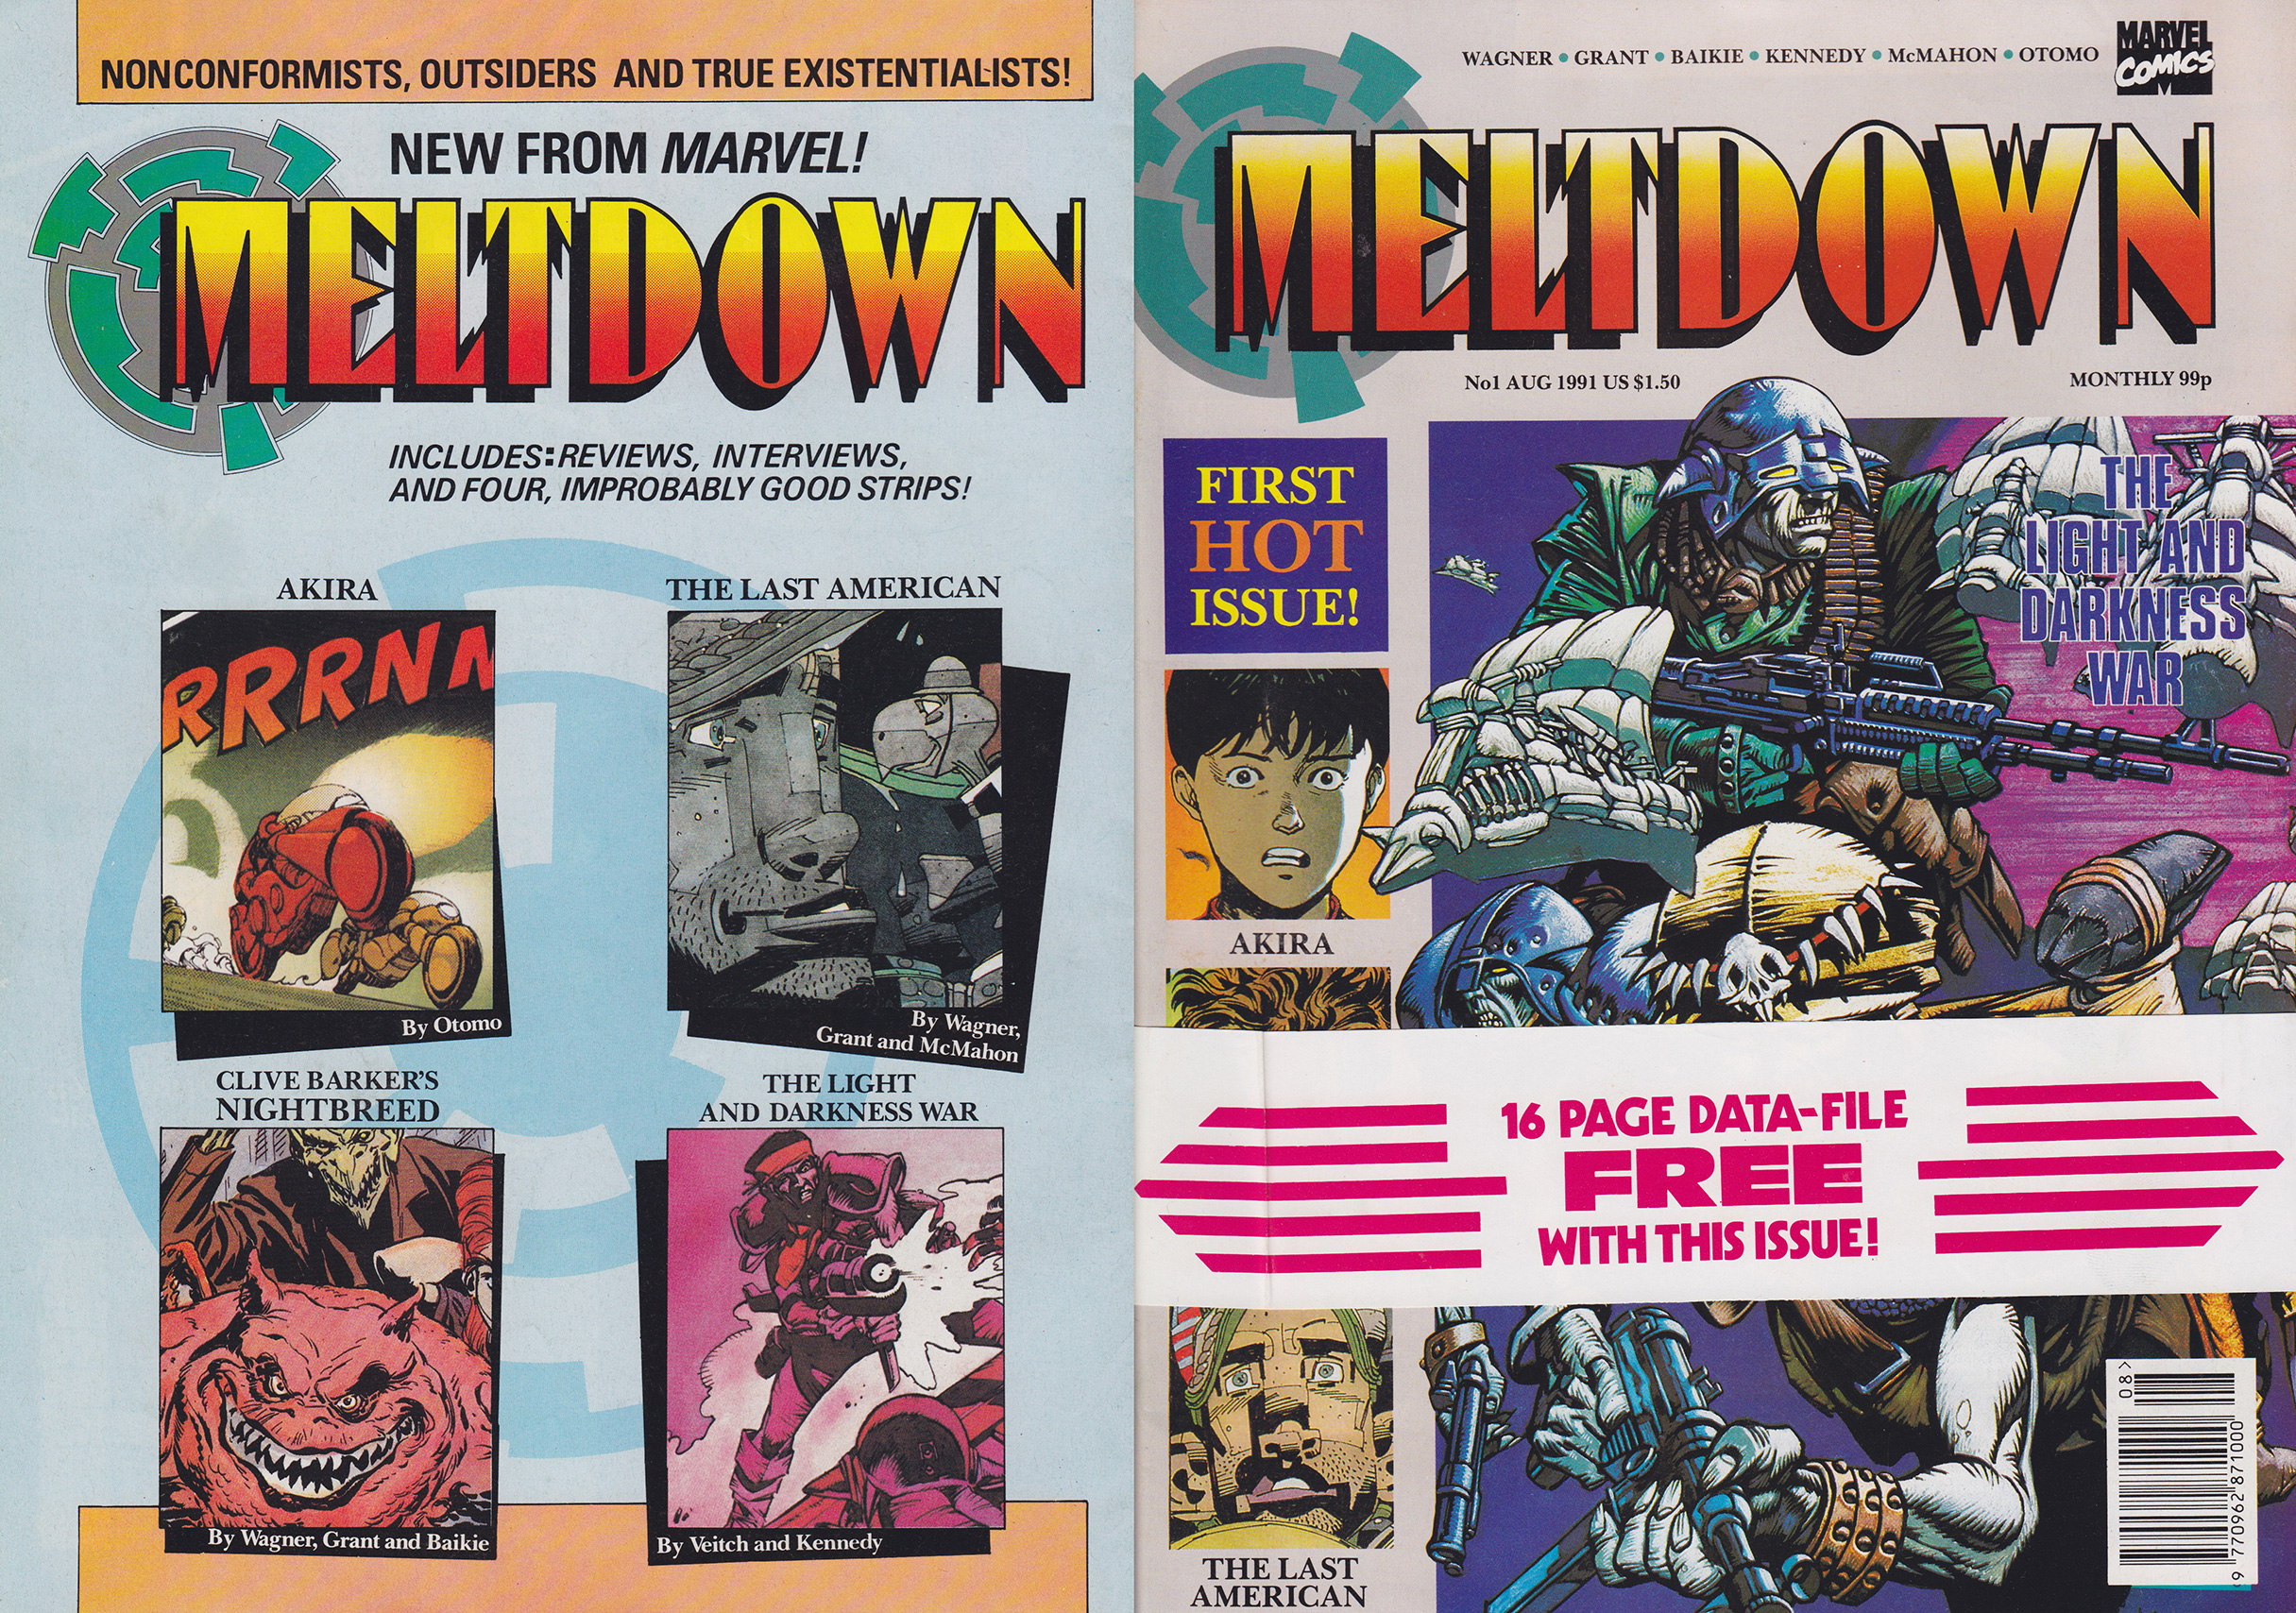 Straight from the 90s, it's Meltdown